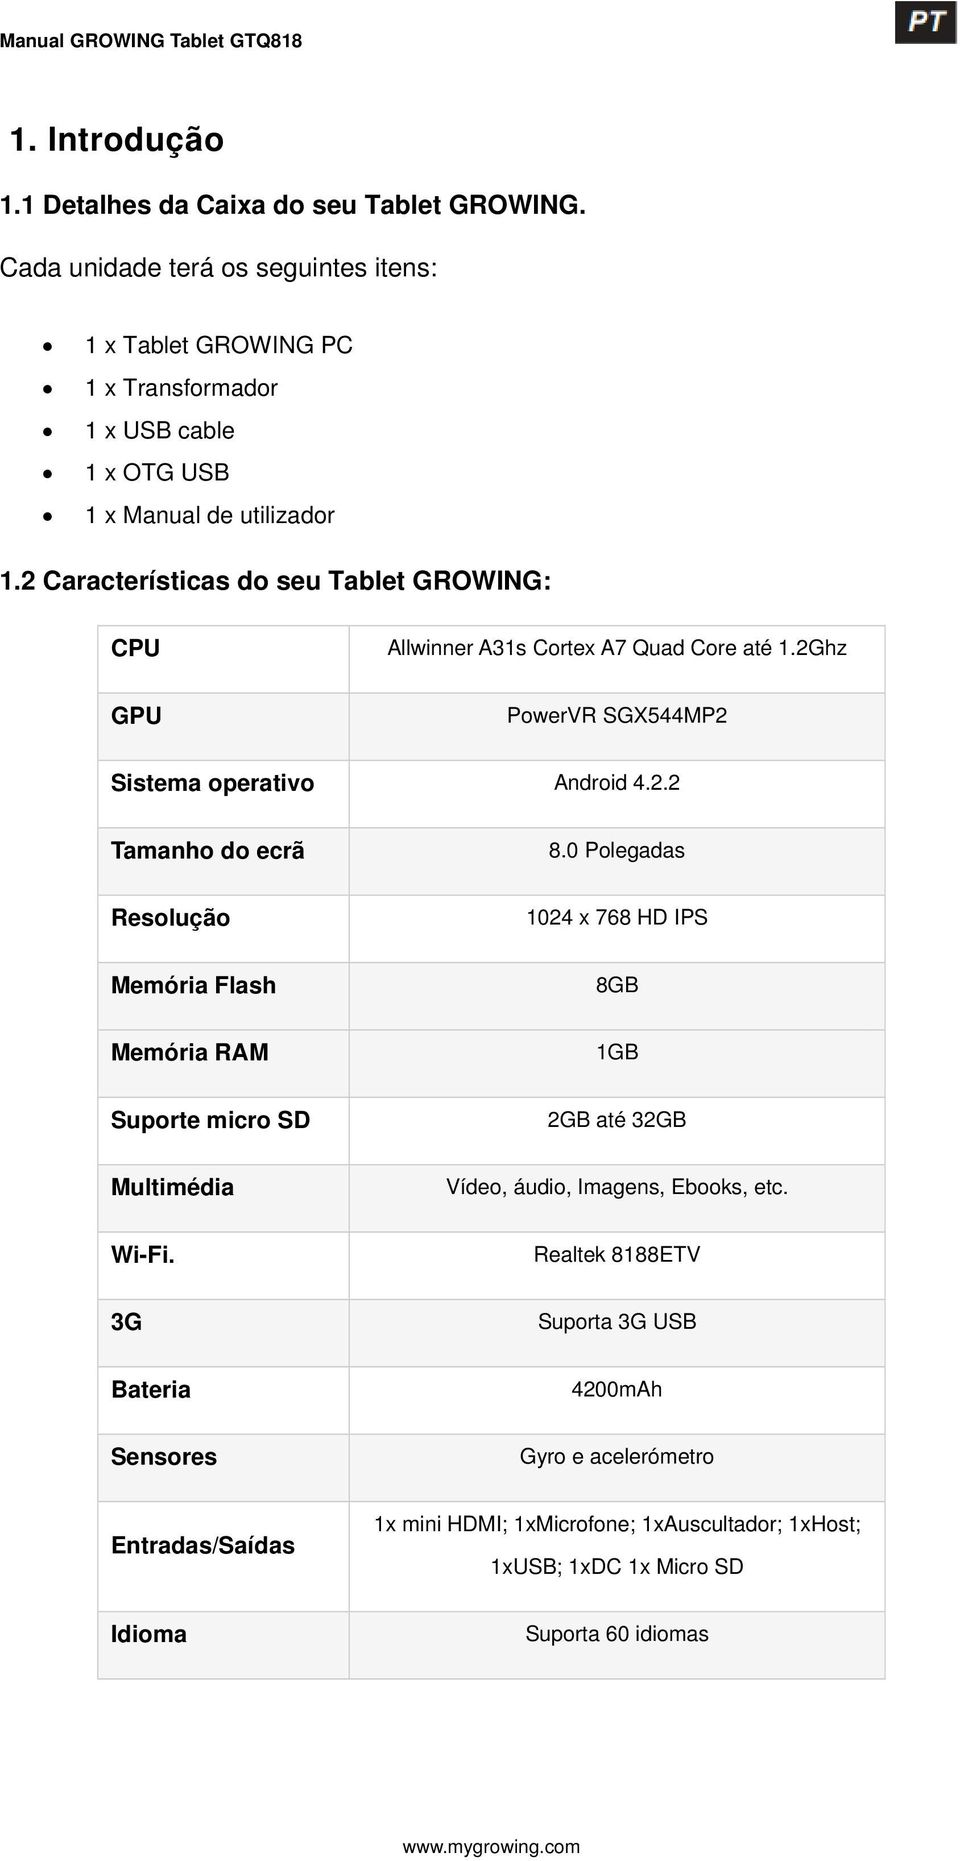 2 Características do seu Tablet GROWING: CPU Allwinner A31s Cortex A7 Quad Core até 1.2Ghz GPU PowerVR SGX544MP2 Sistema operativo Android 4.2.2 Tamanho do ecrã 8.